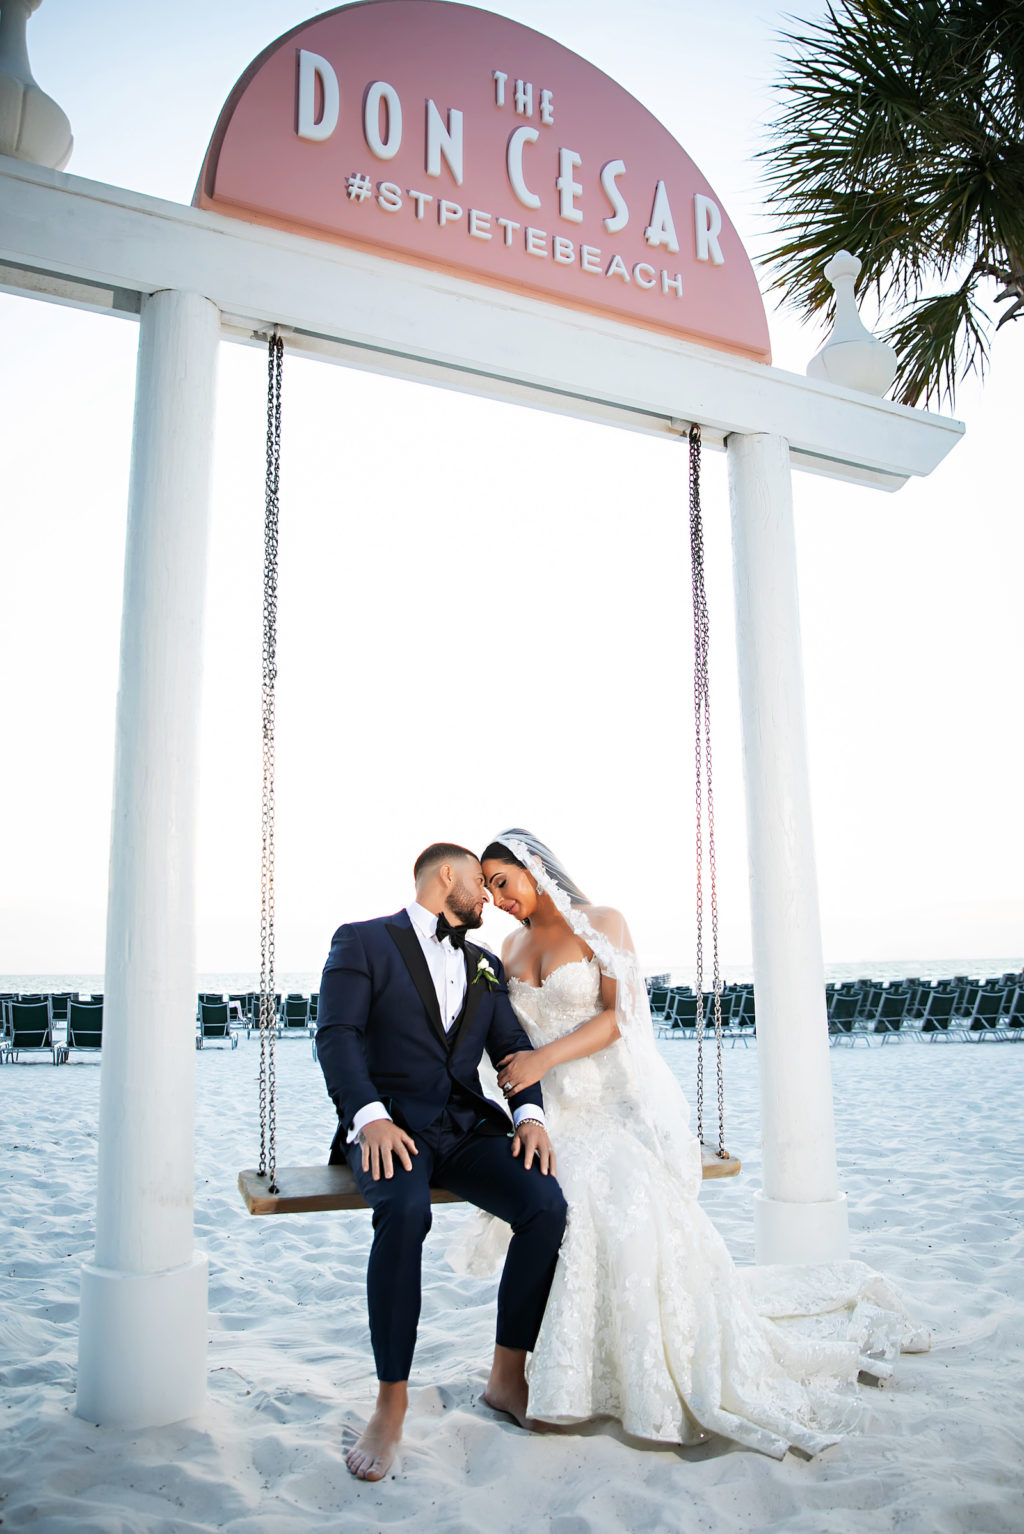 Florida Bride and Groom Beach Wedding at The Don Cesar in #StPeteBeach   Tampa Bay Wedding Photography Limelight Photography